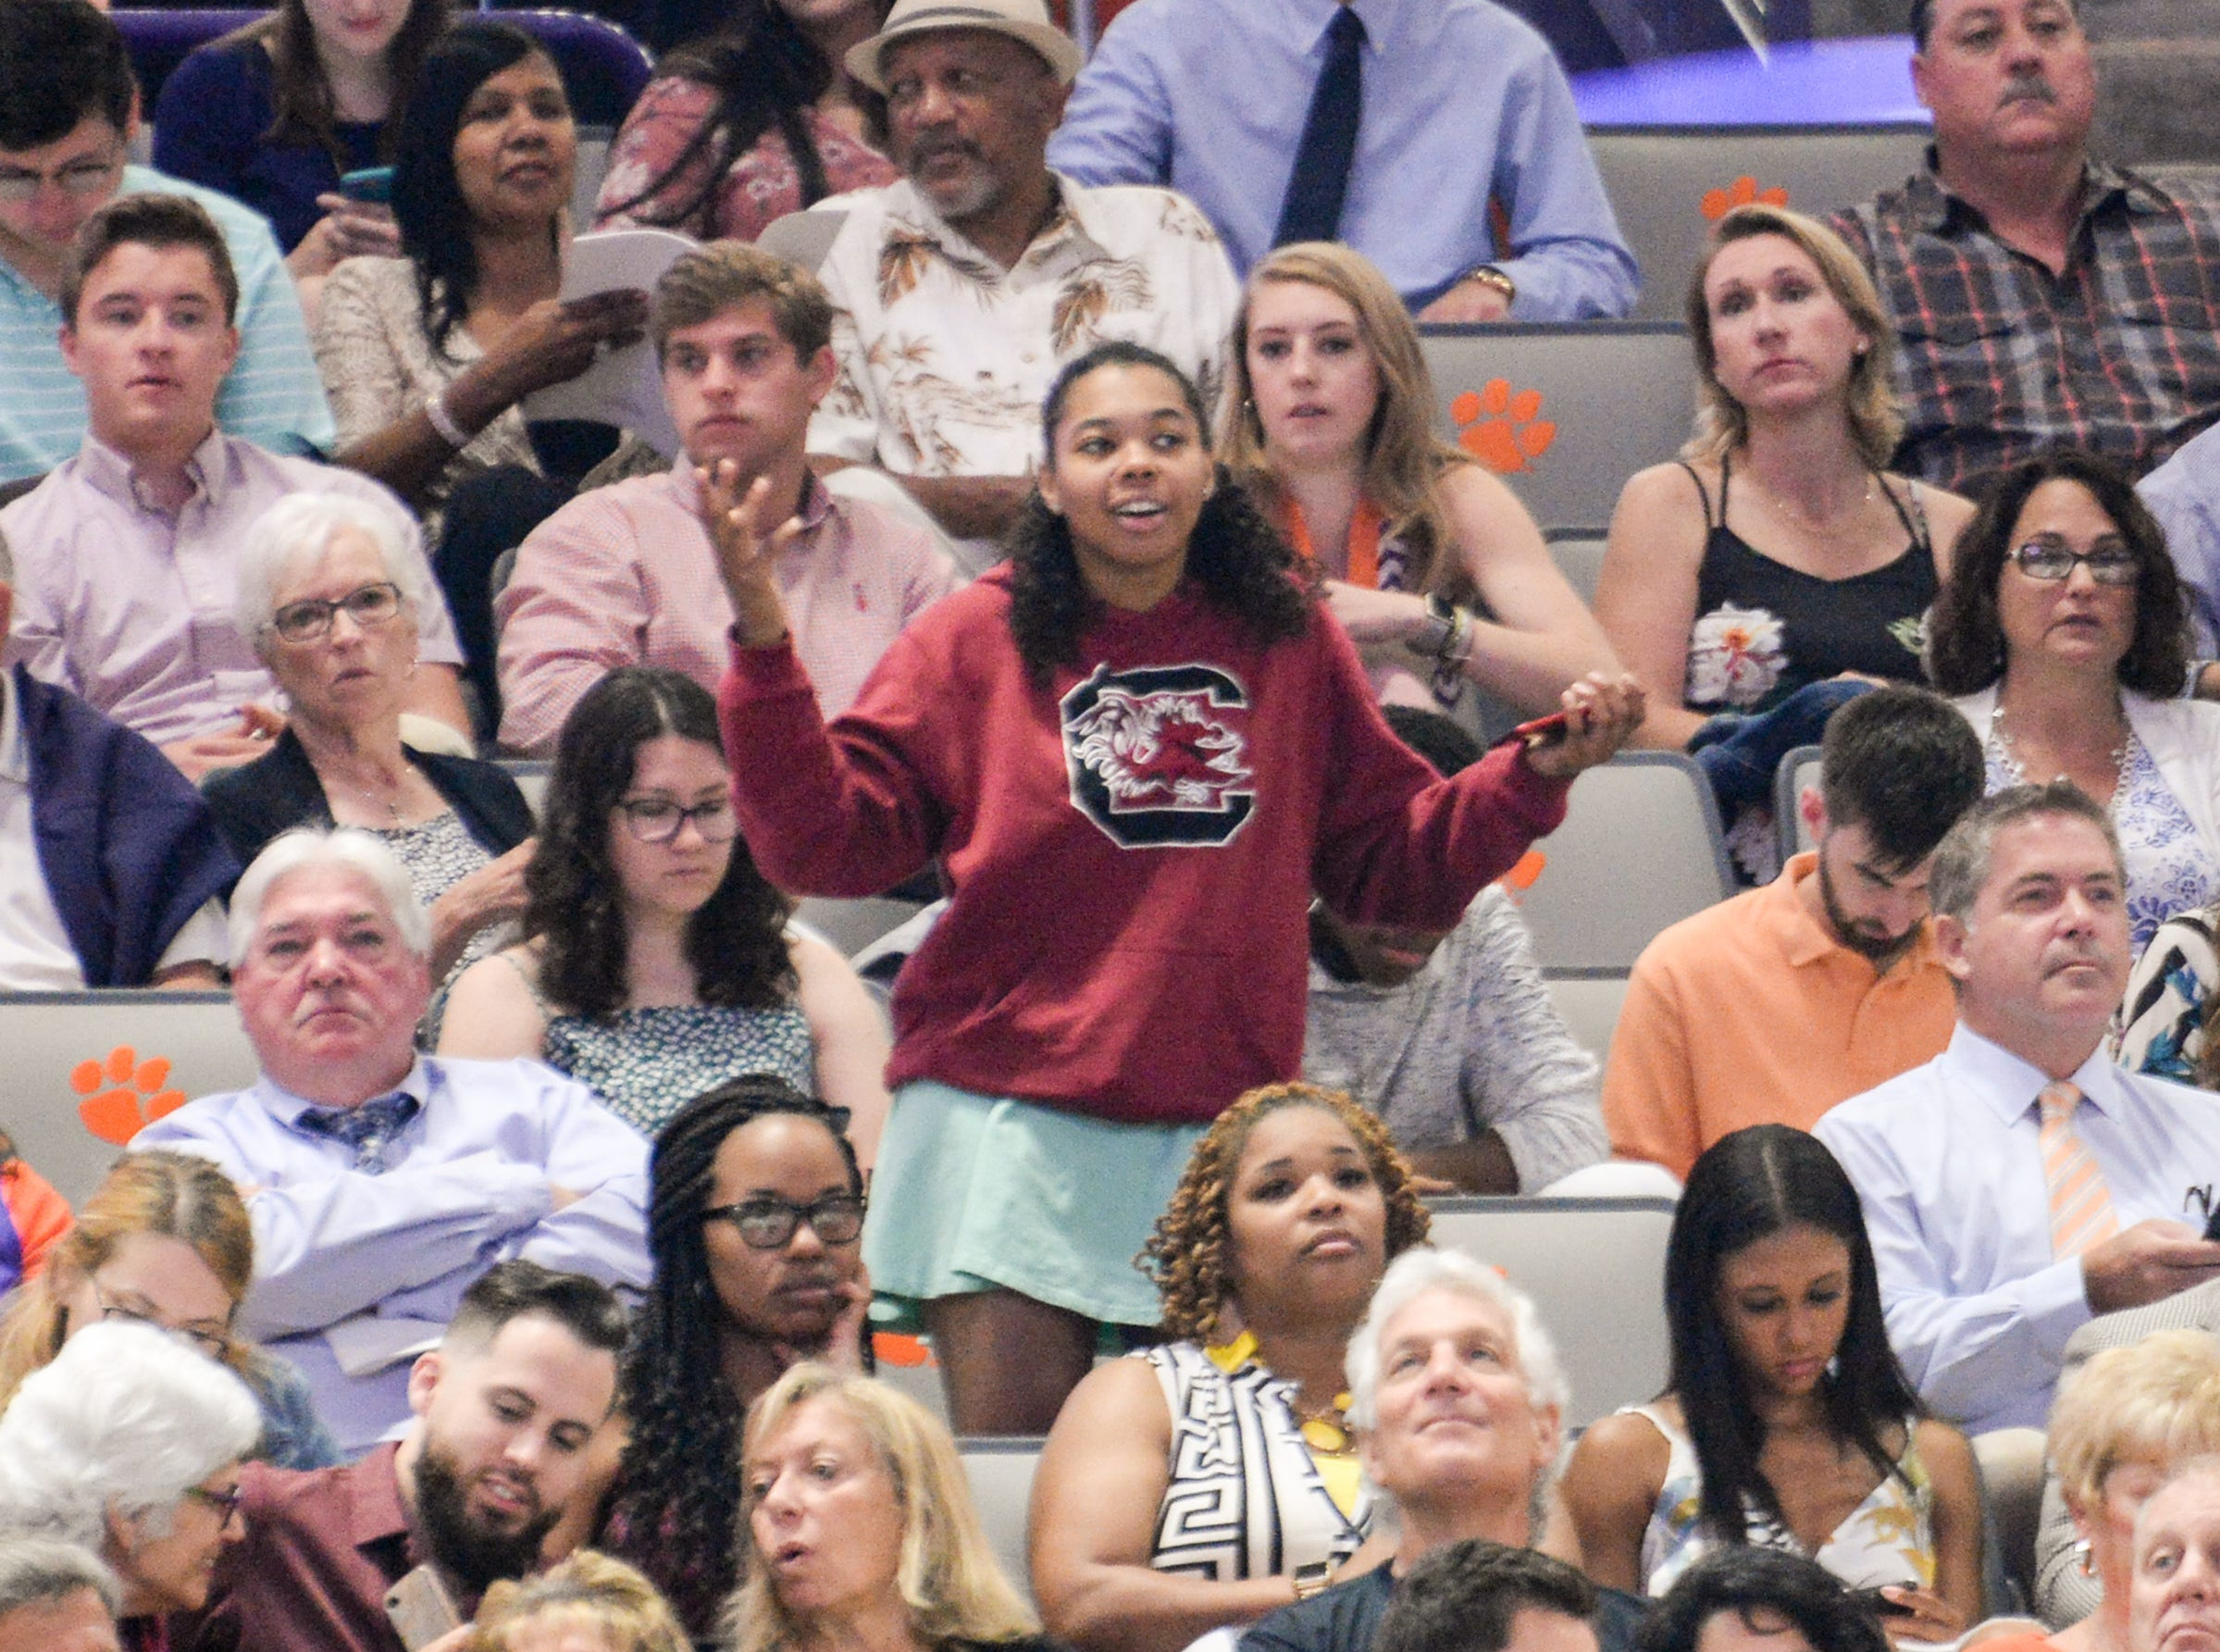 A young woman wearing a University of South Carolina sweatshirt stands up in a crowd an hour before Clemson University commencement ceremonies in Littlejohn Coliseum in Clemson Friday, May 10, 2019.